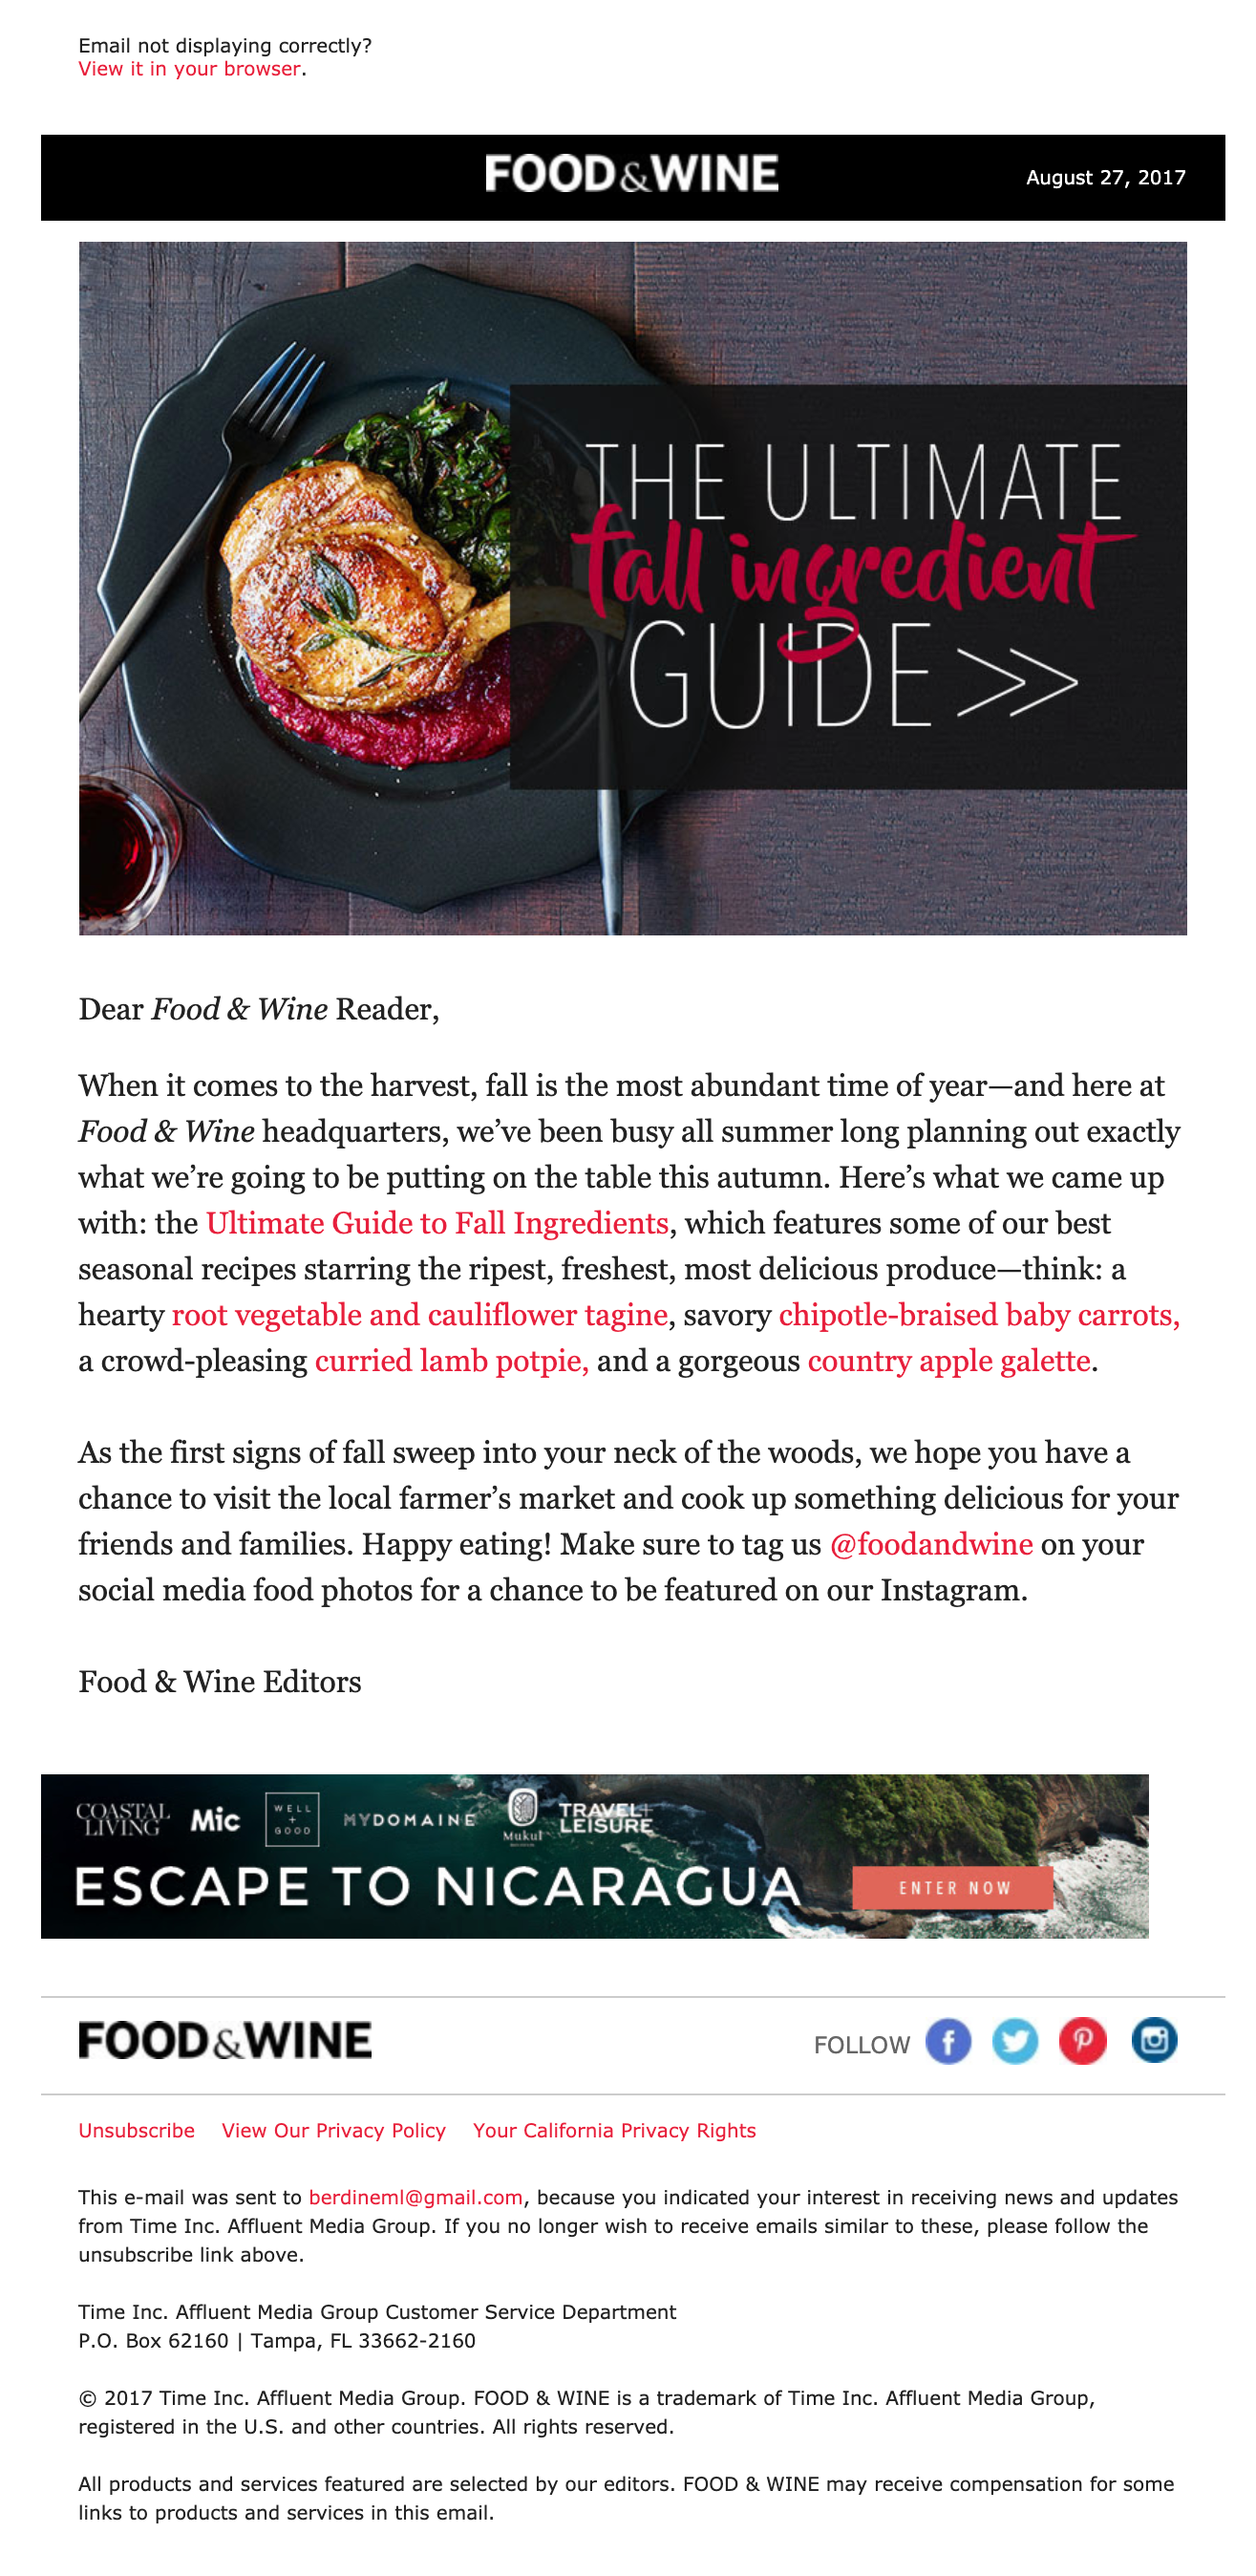 Food & Wine's email